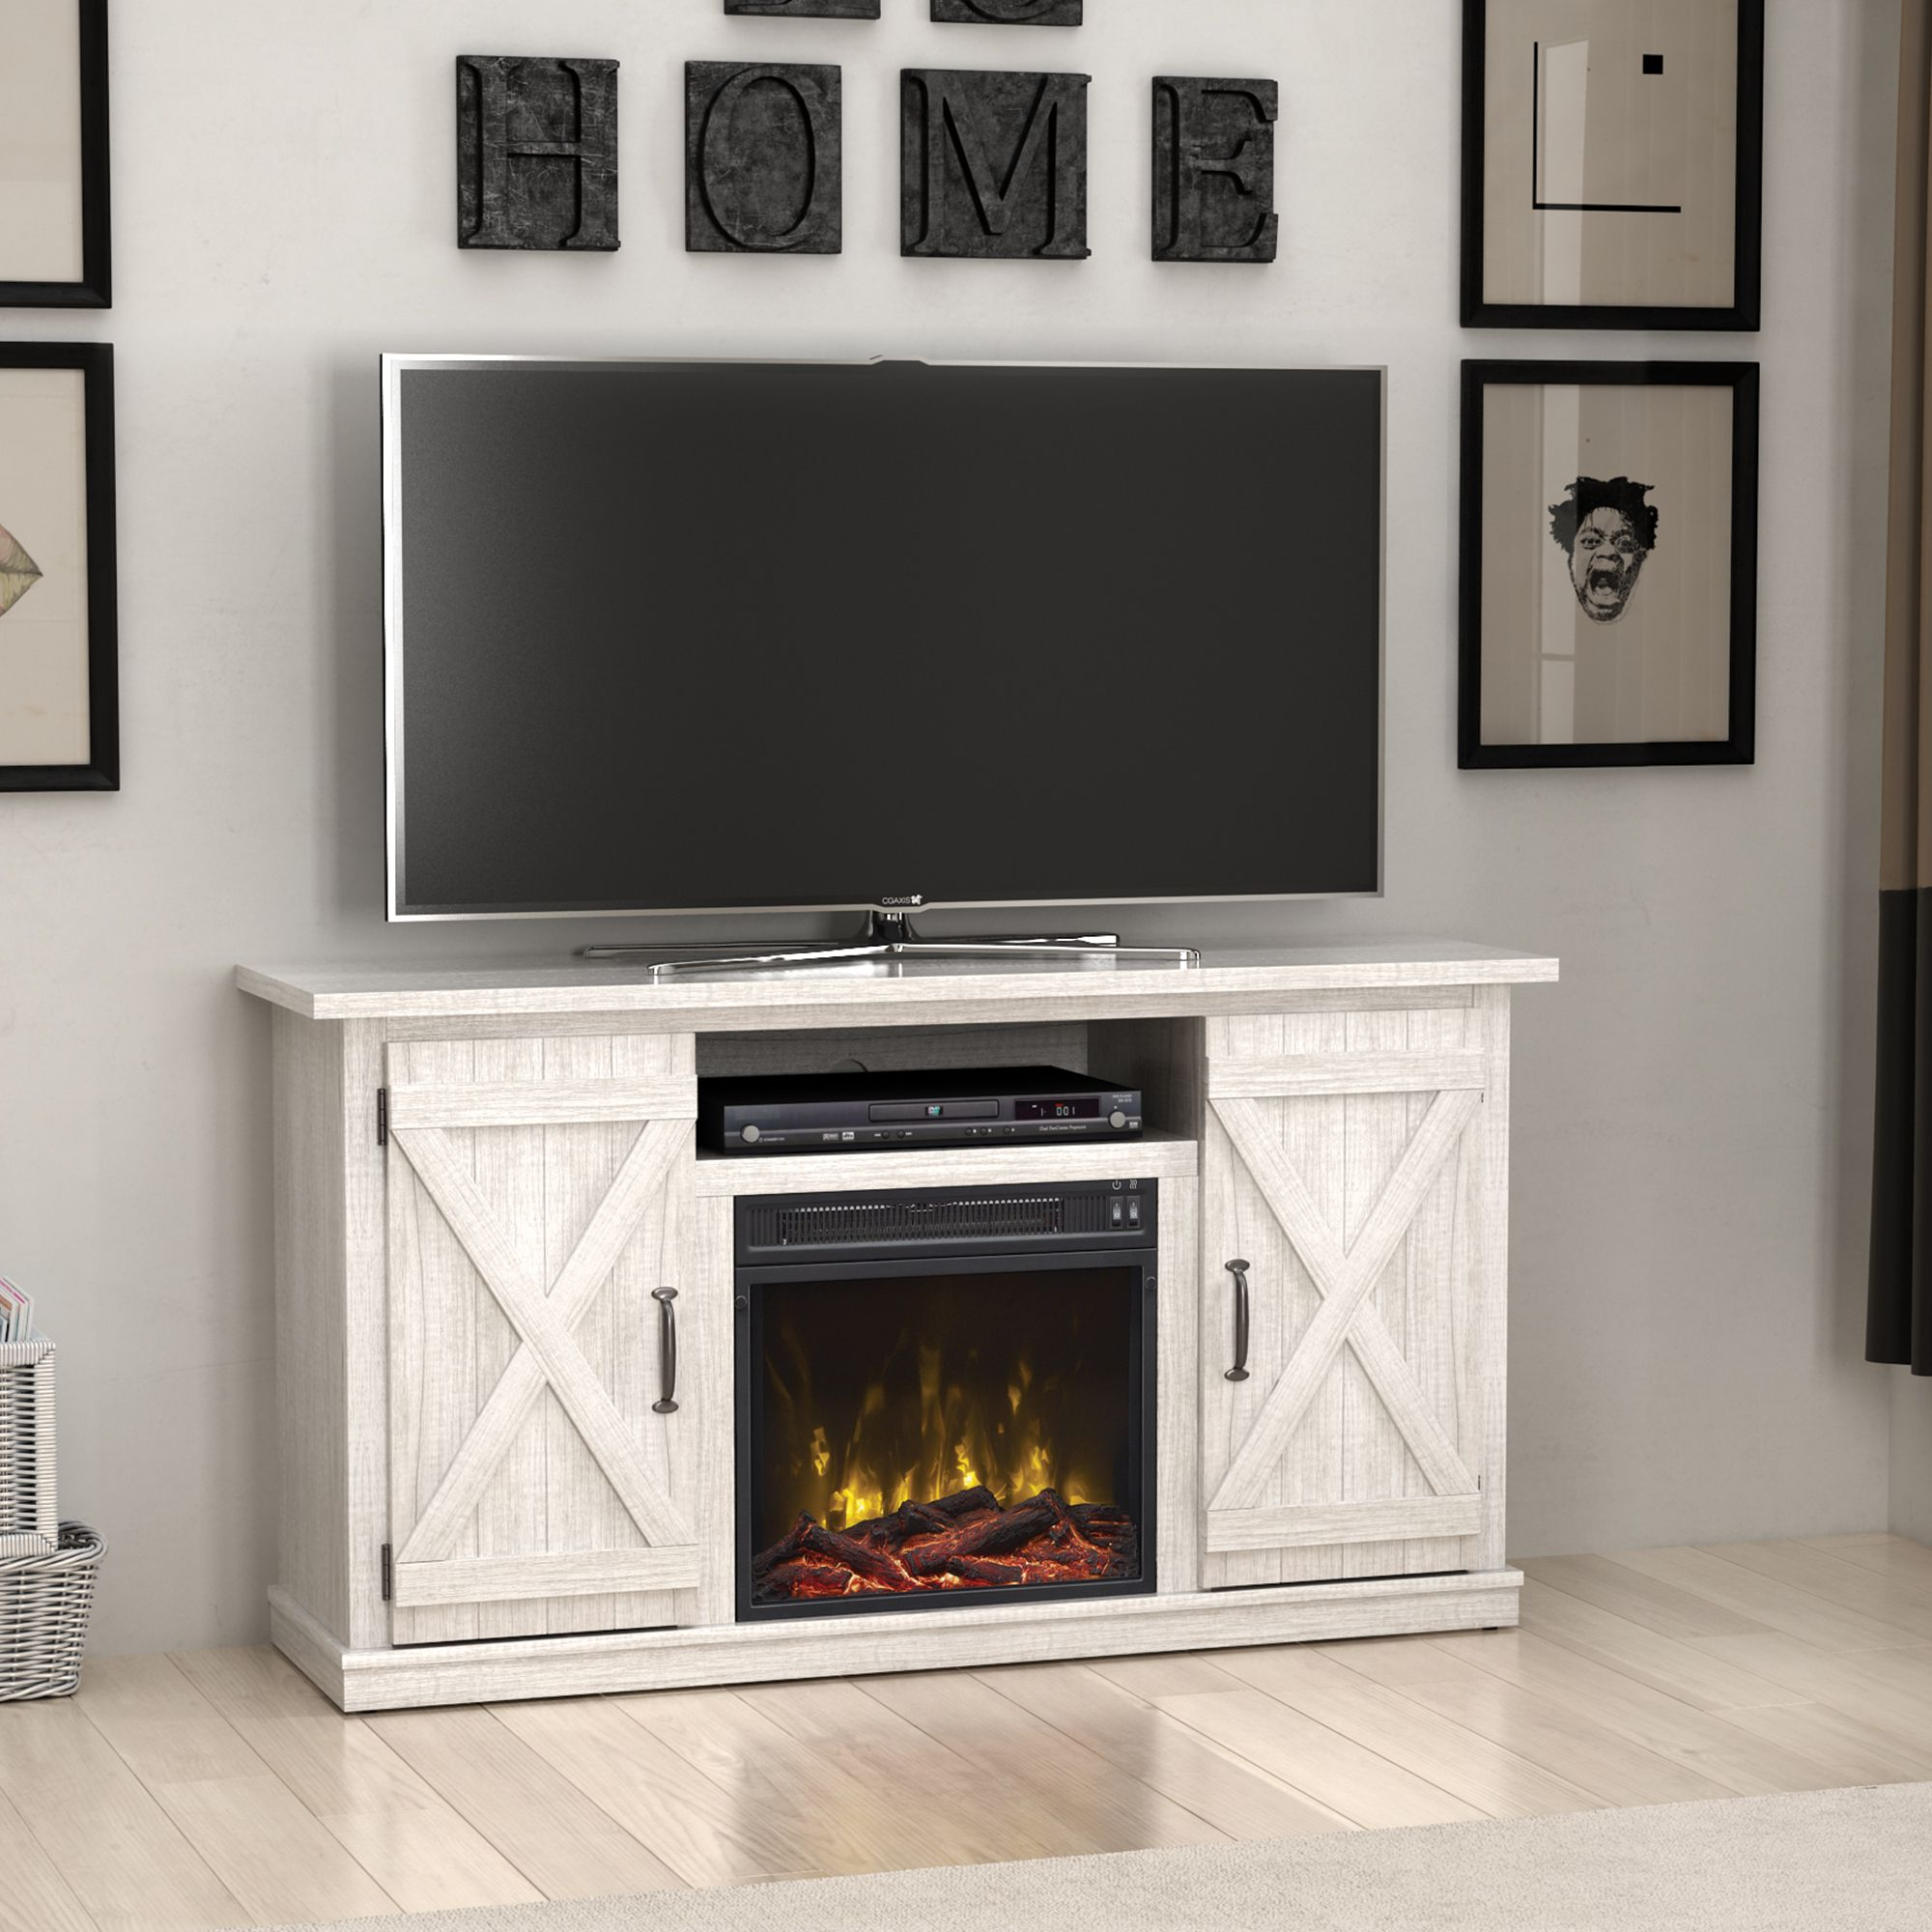 Home in 2020 Electric fireplace, Fireplace tv stand